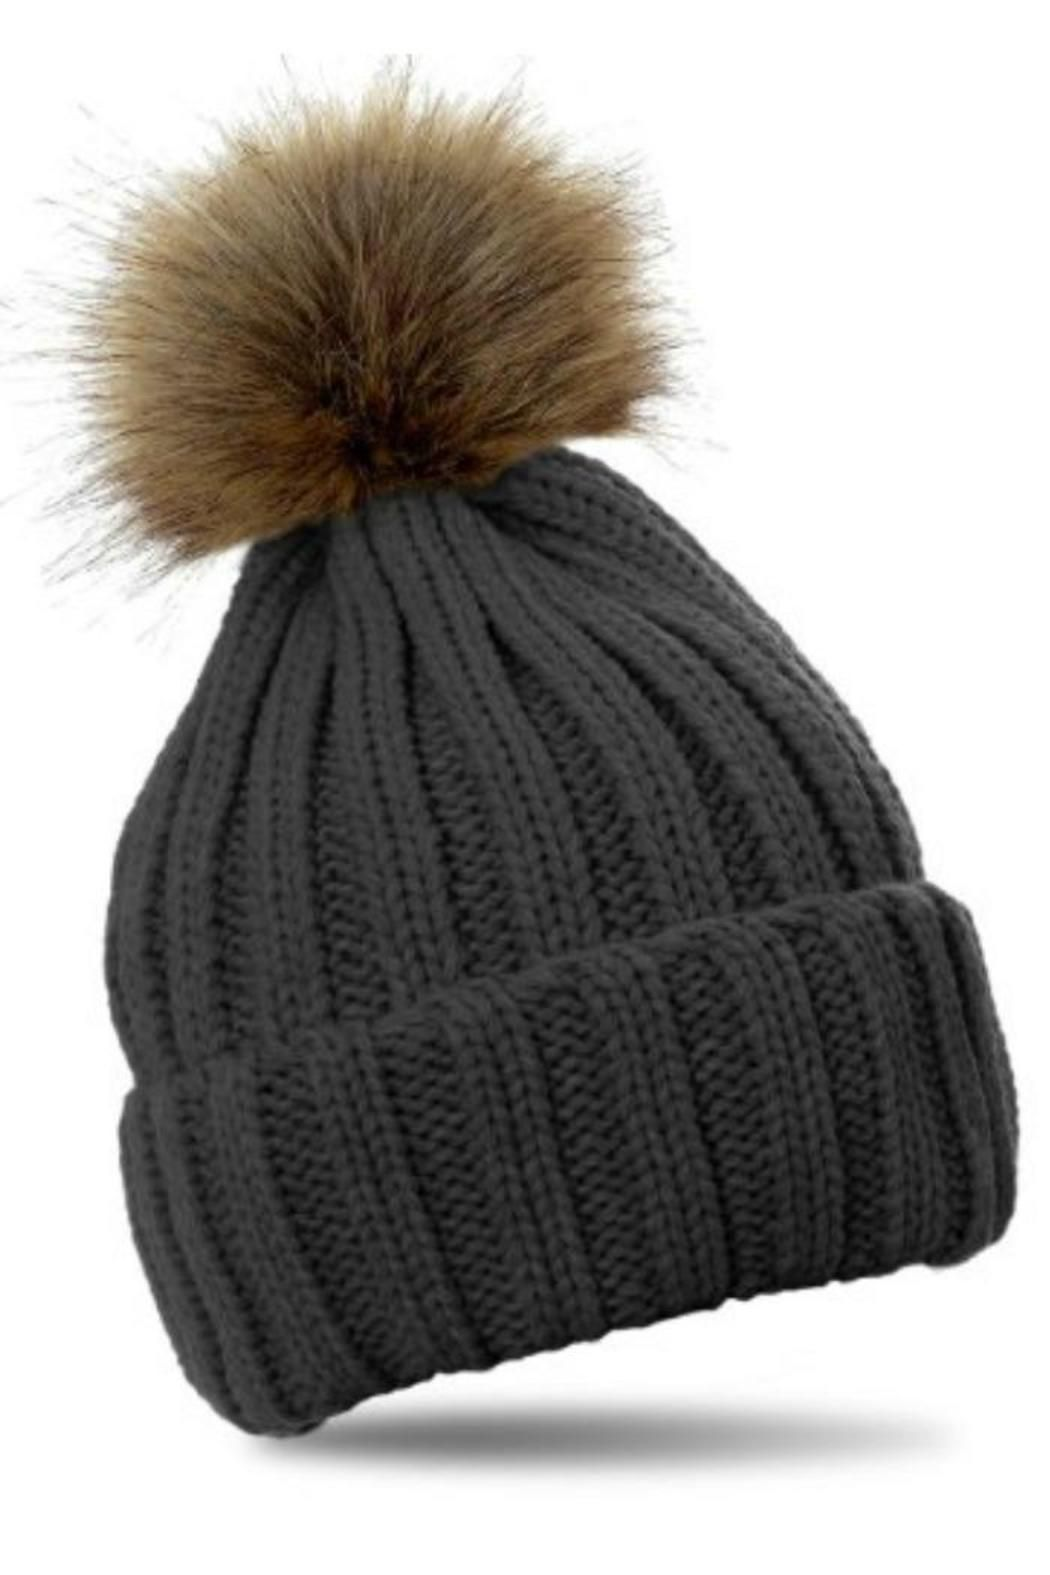 23d53a457548e Pom Pom is detachable to wash hat. One-size. Pom Pom Hat by PInk Pineapple.  Accessories - Winter Accessories Accessories - Hats Massachusetts